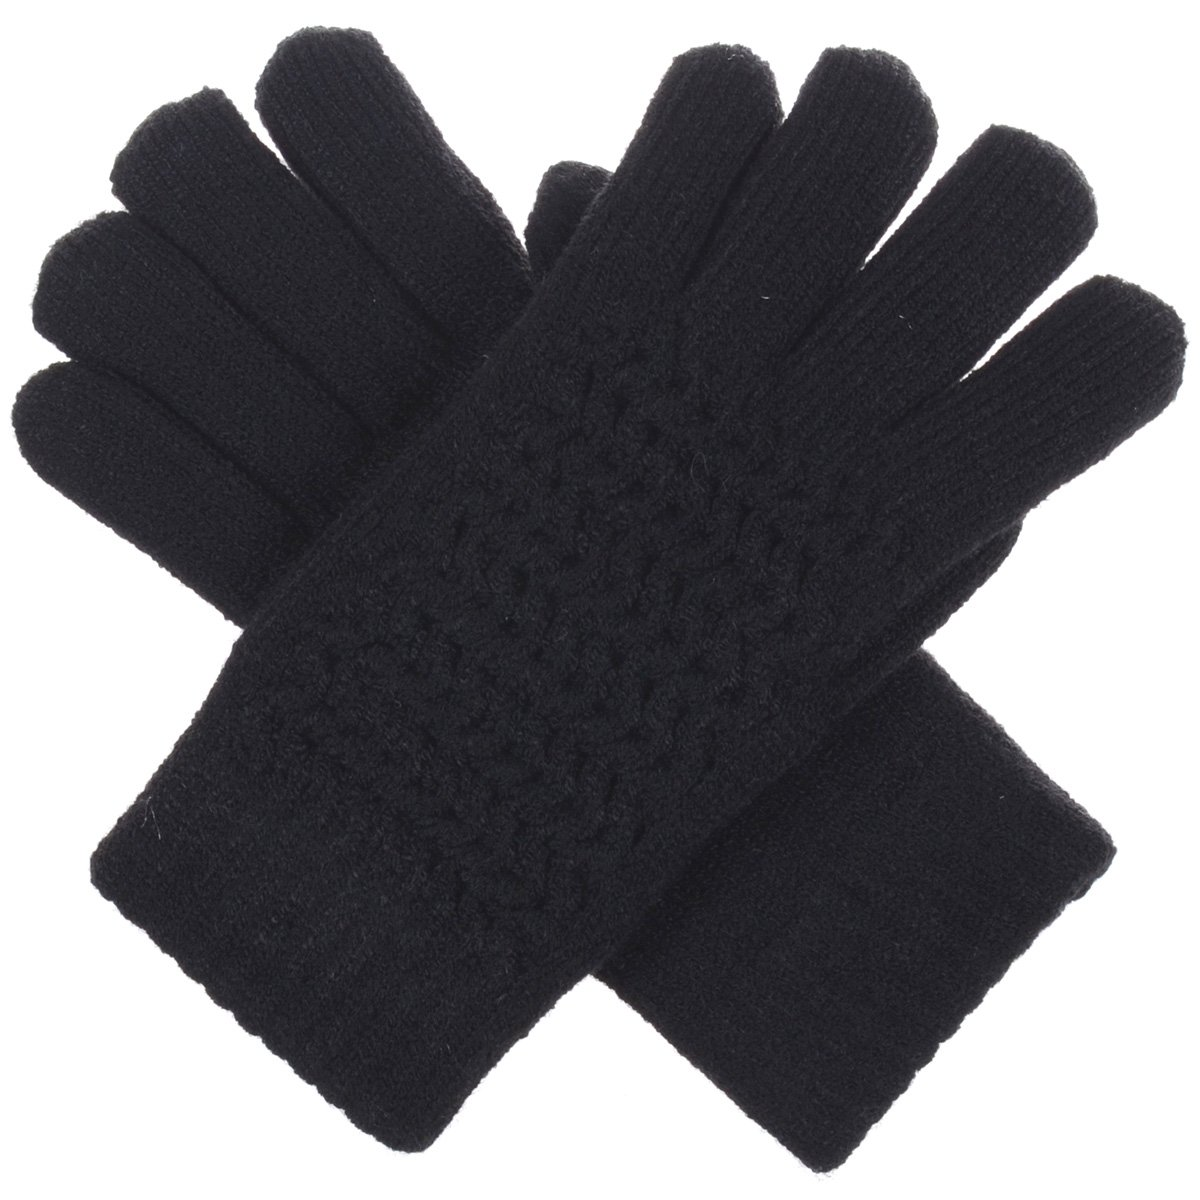 BYOS Womens Winter Ultra Warm Soft Plush Faux Fur Fleece Lined Knit Gloves W/Decorated Cuff (Black Net)